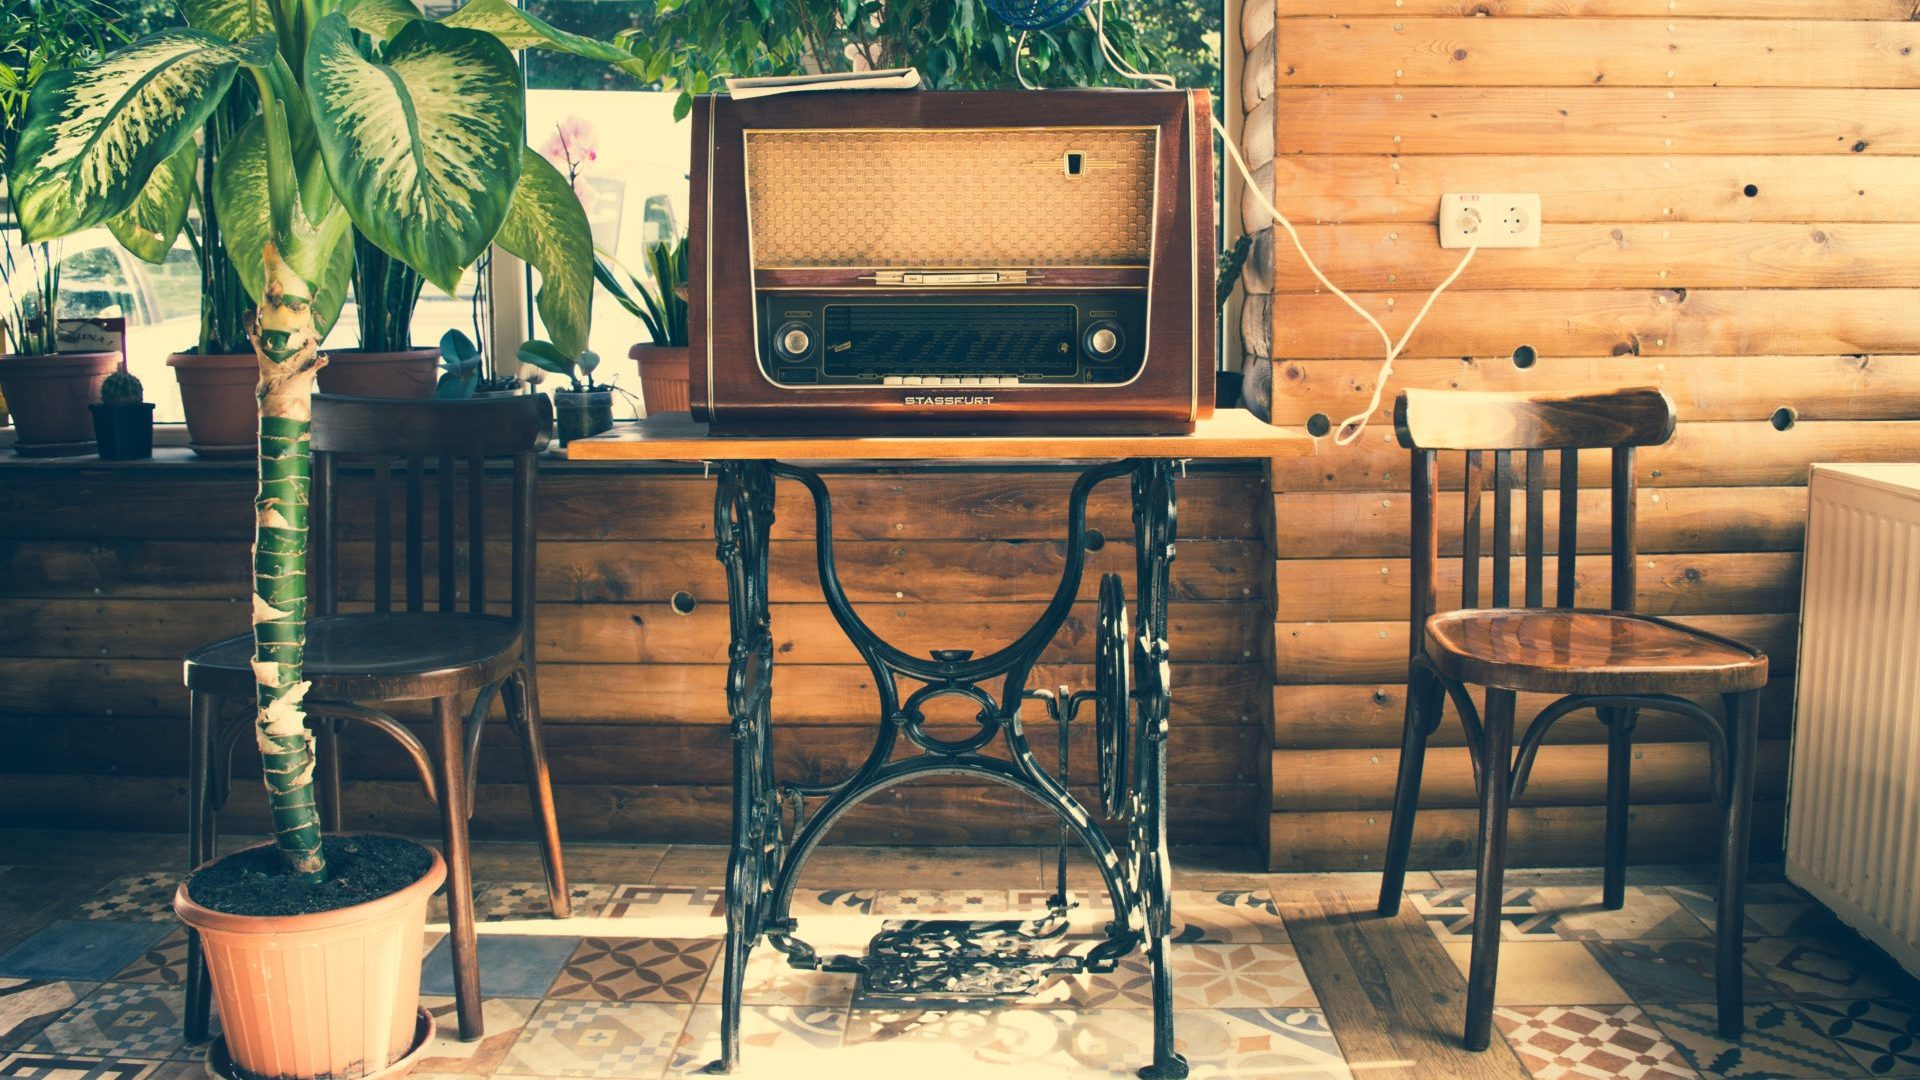 An old radio on a desk made out of an old singer sewing machine - reusing furniture is a great way to avoid throwing furniture away